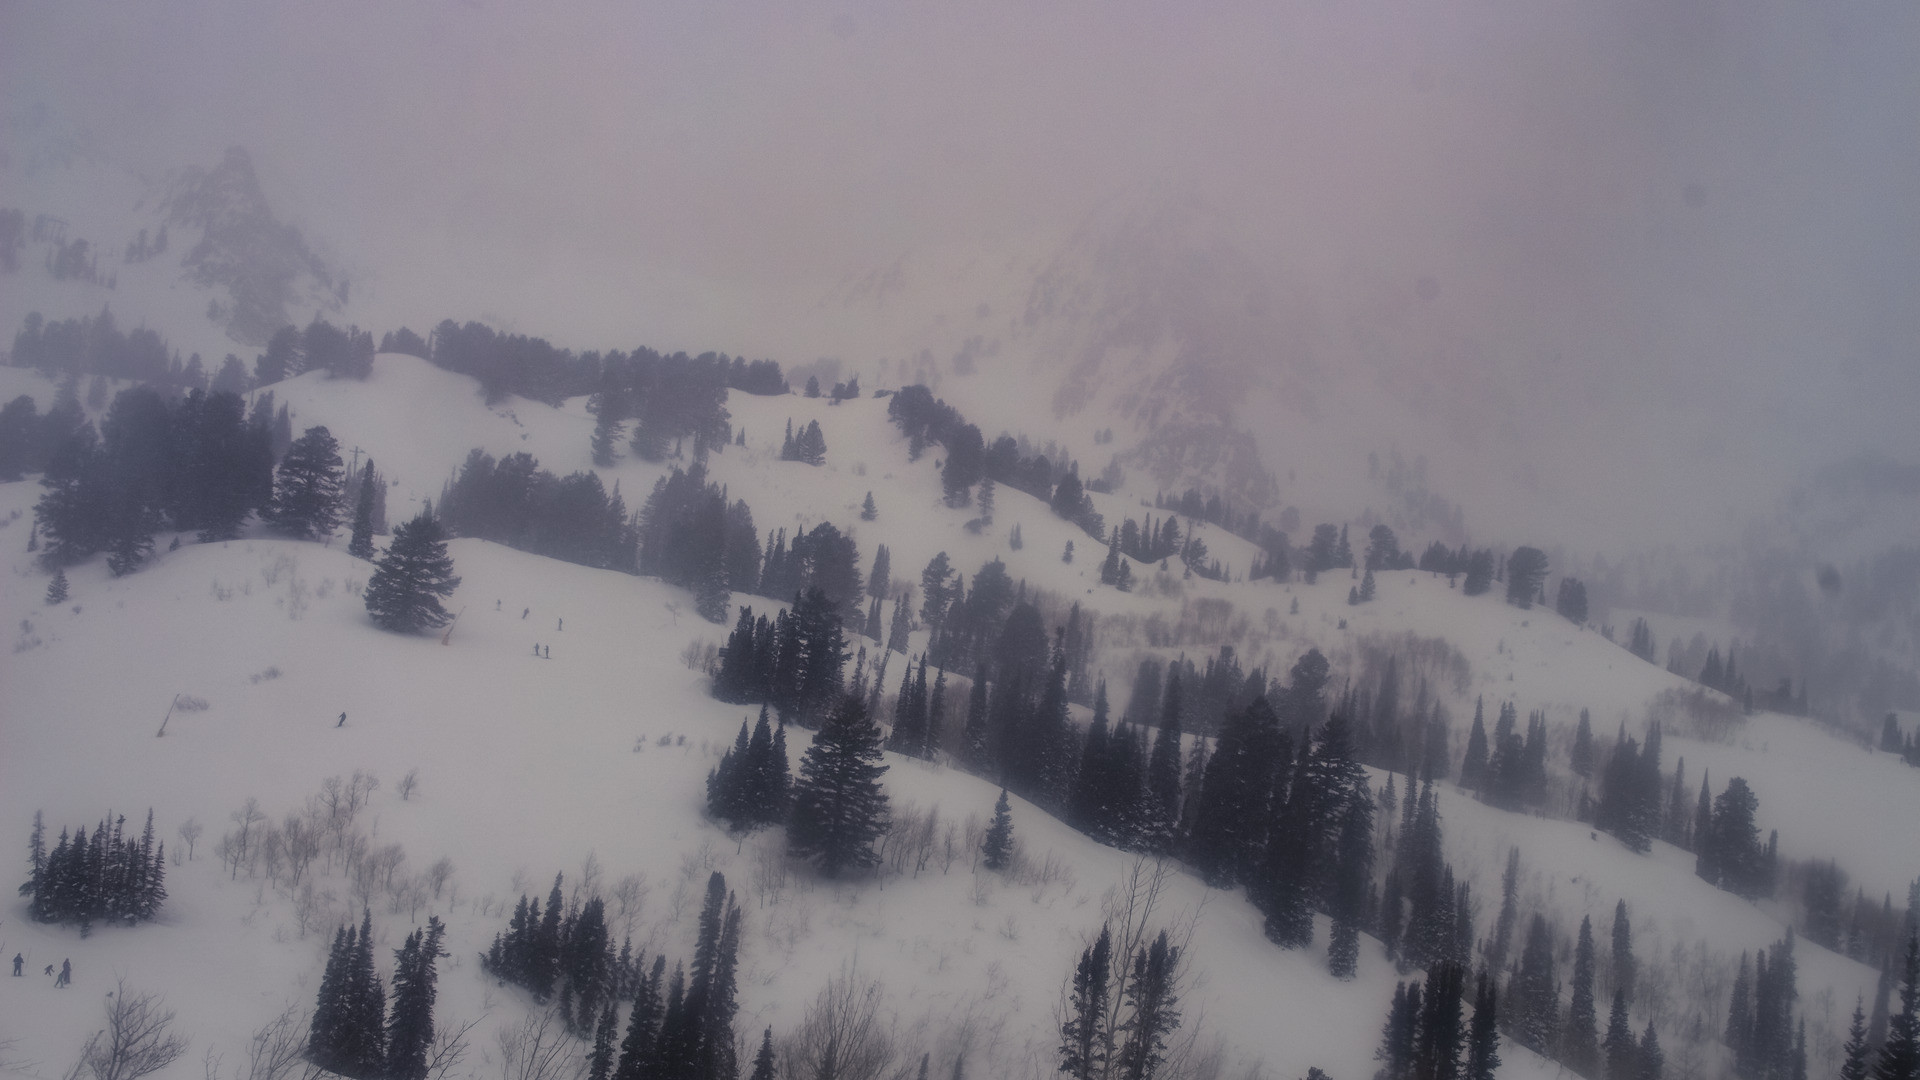 View from Snowbasin Resort this afternoon. It's been mostly cloudy with snow showers for most of the day so far.